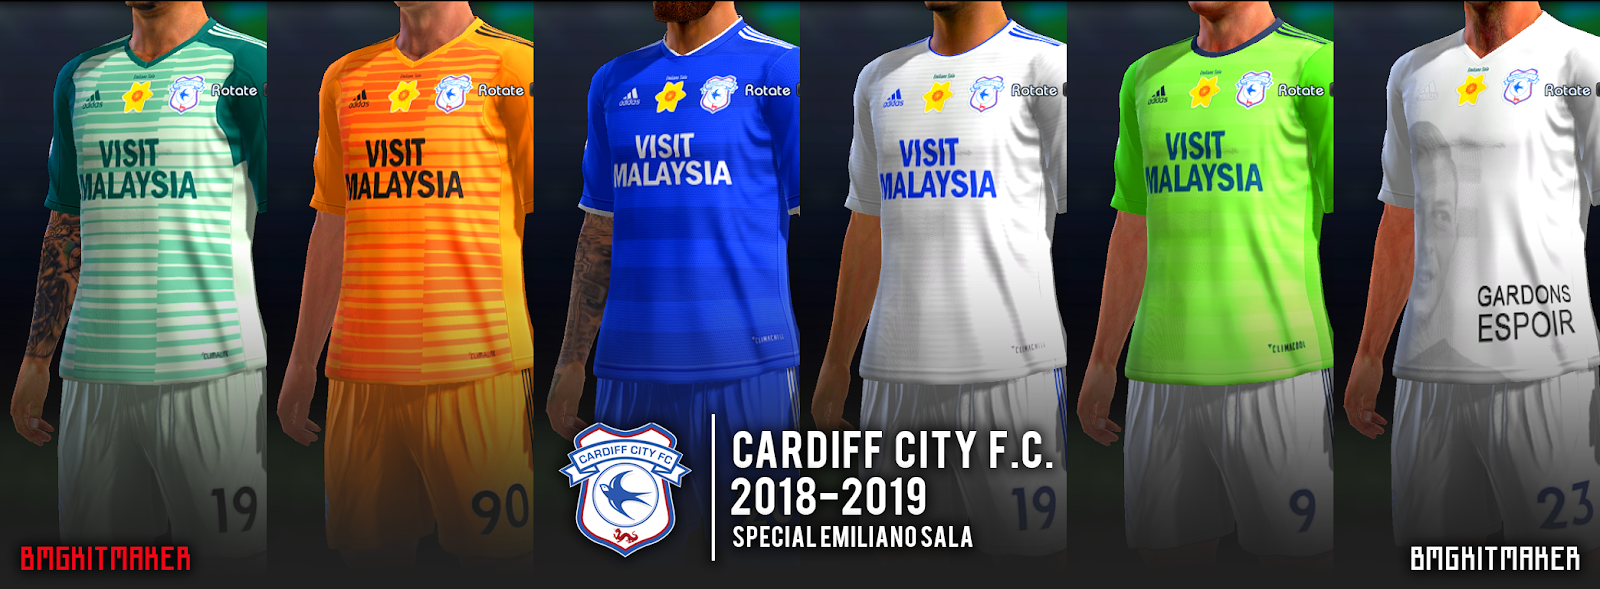 CARDIFF CITY F.C. KIT 2018-2019 for PES 2013 by BMGKITMAKER